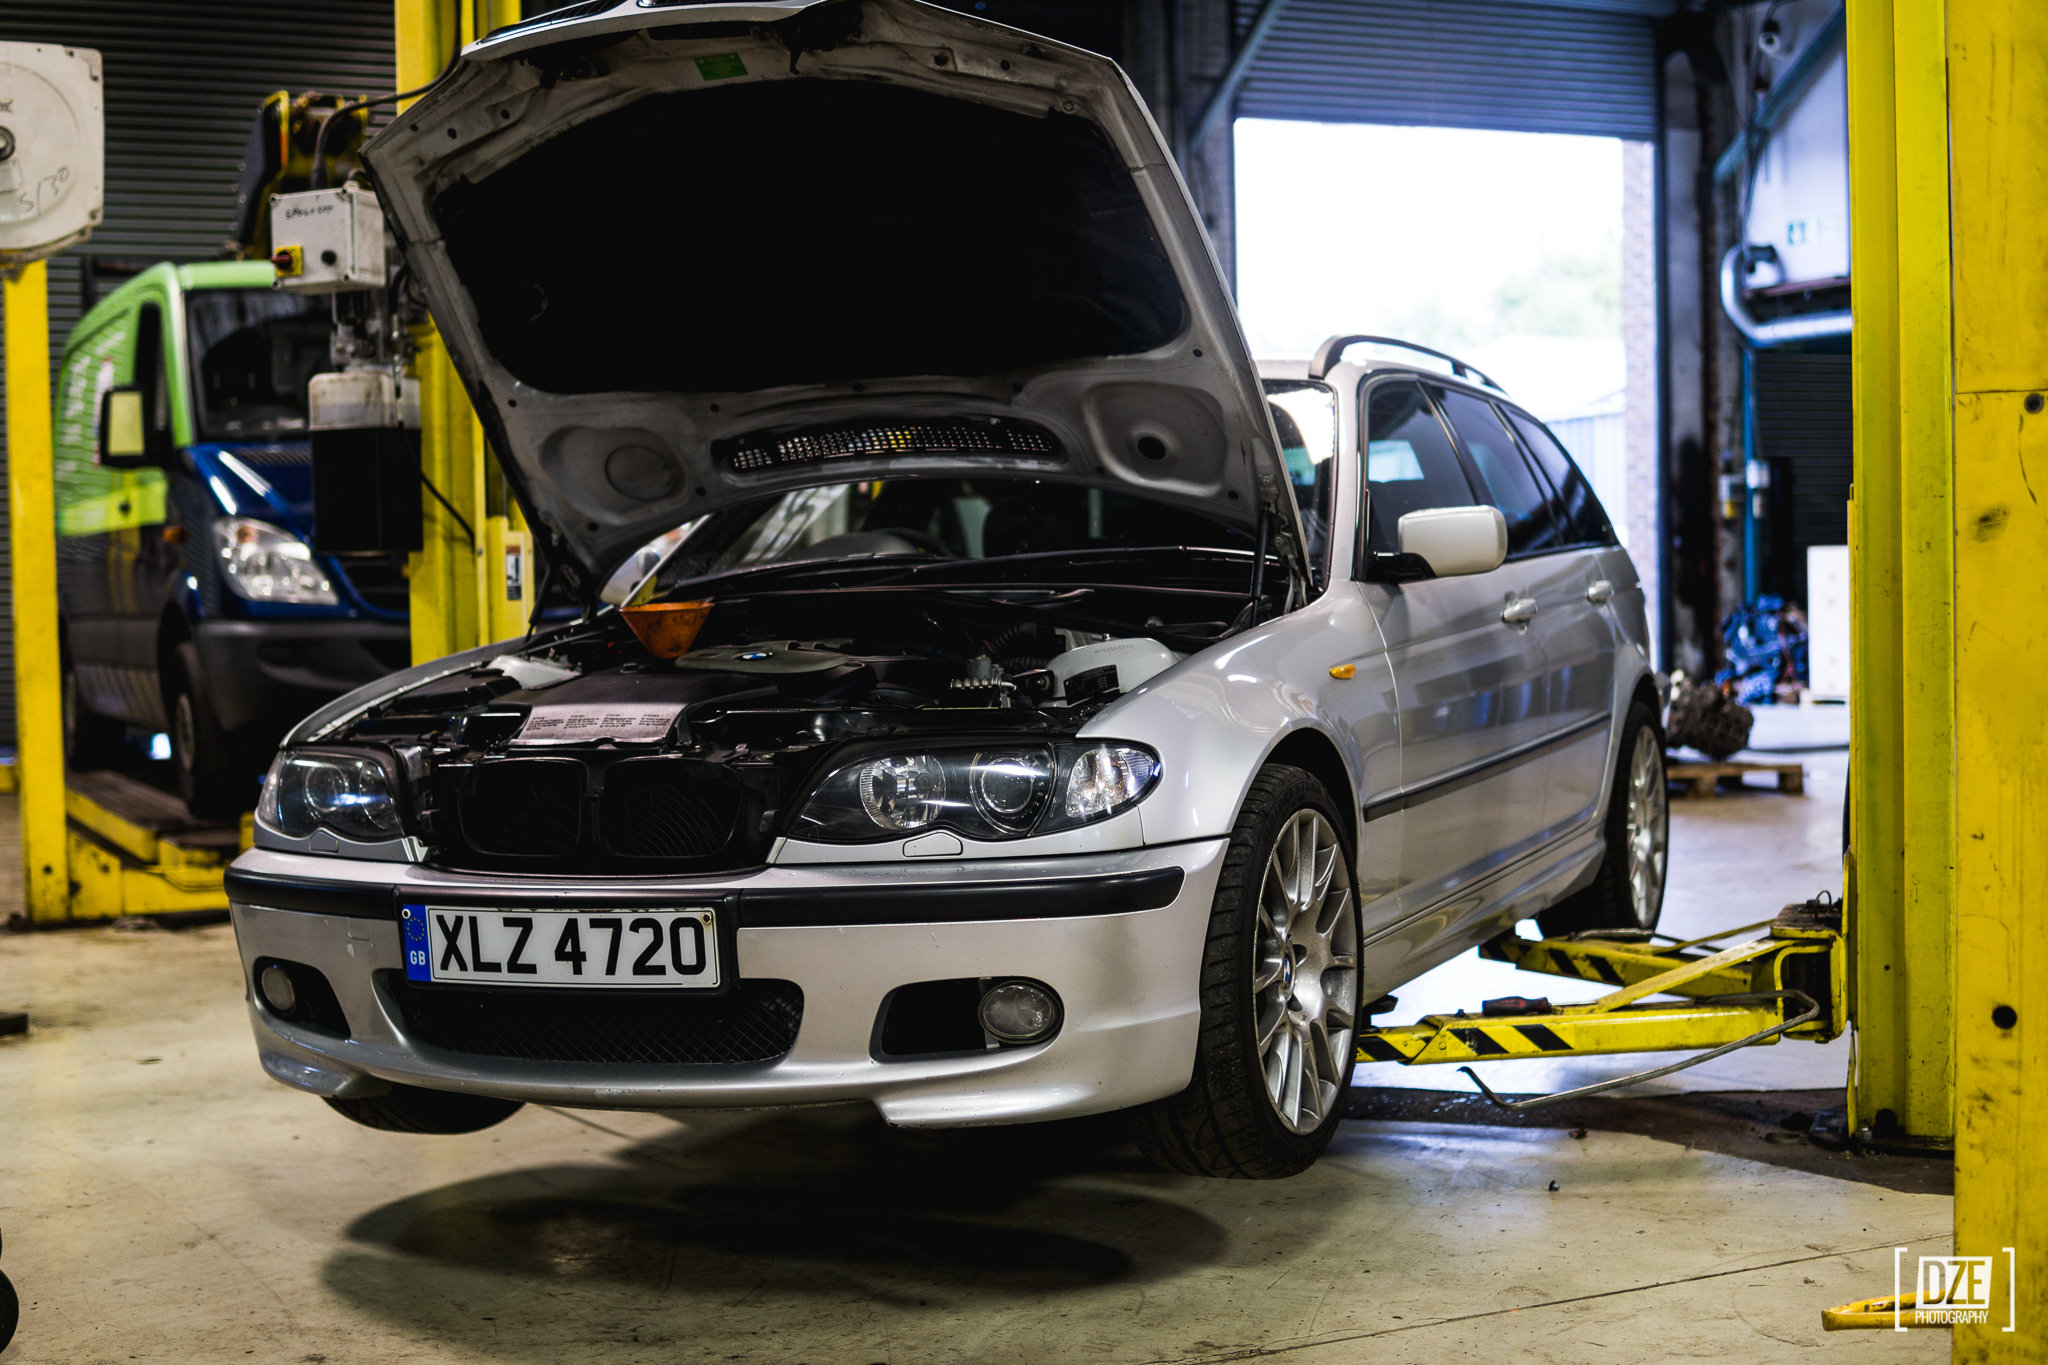 Bmw 330d E46 Oil Change BMW e46 Oil Change Oil Service DIY